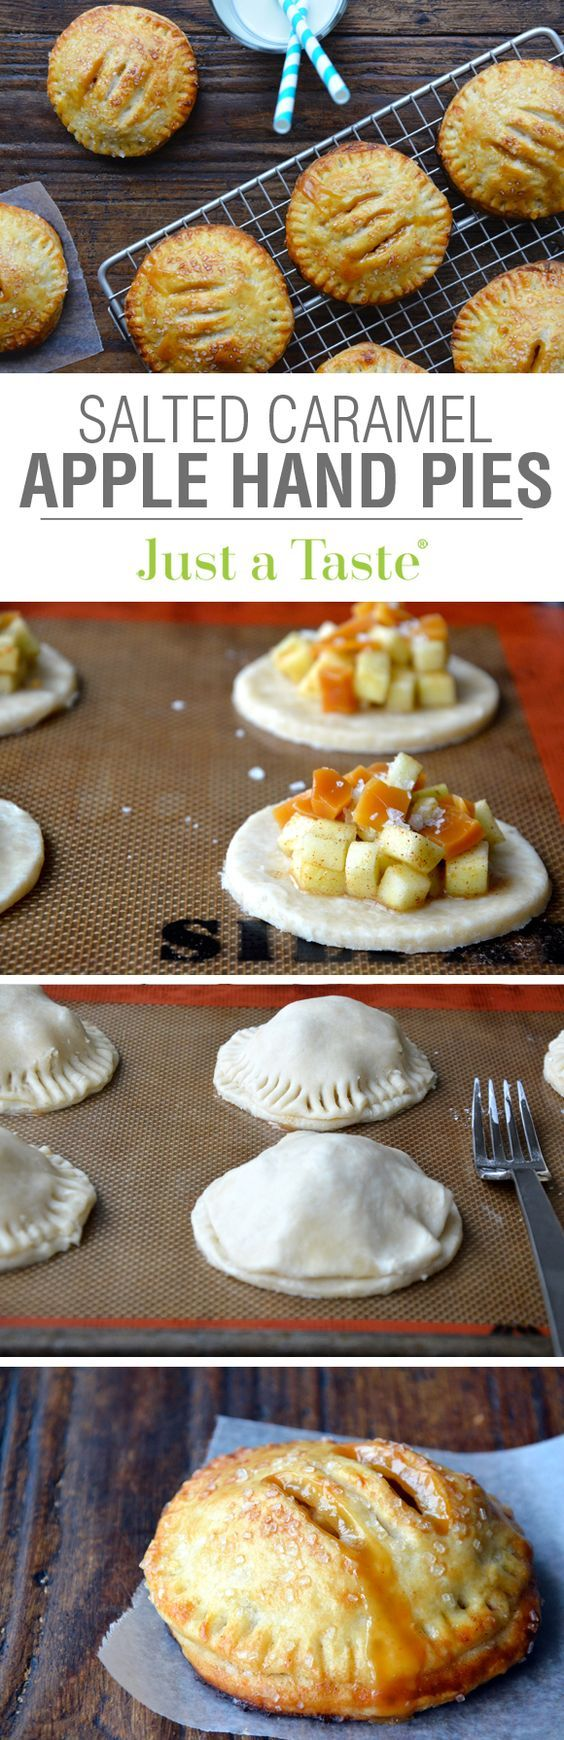 Salted Caramel Apple Hand PiesSalted Caramel Apple Hand Pies